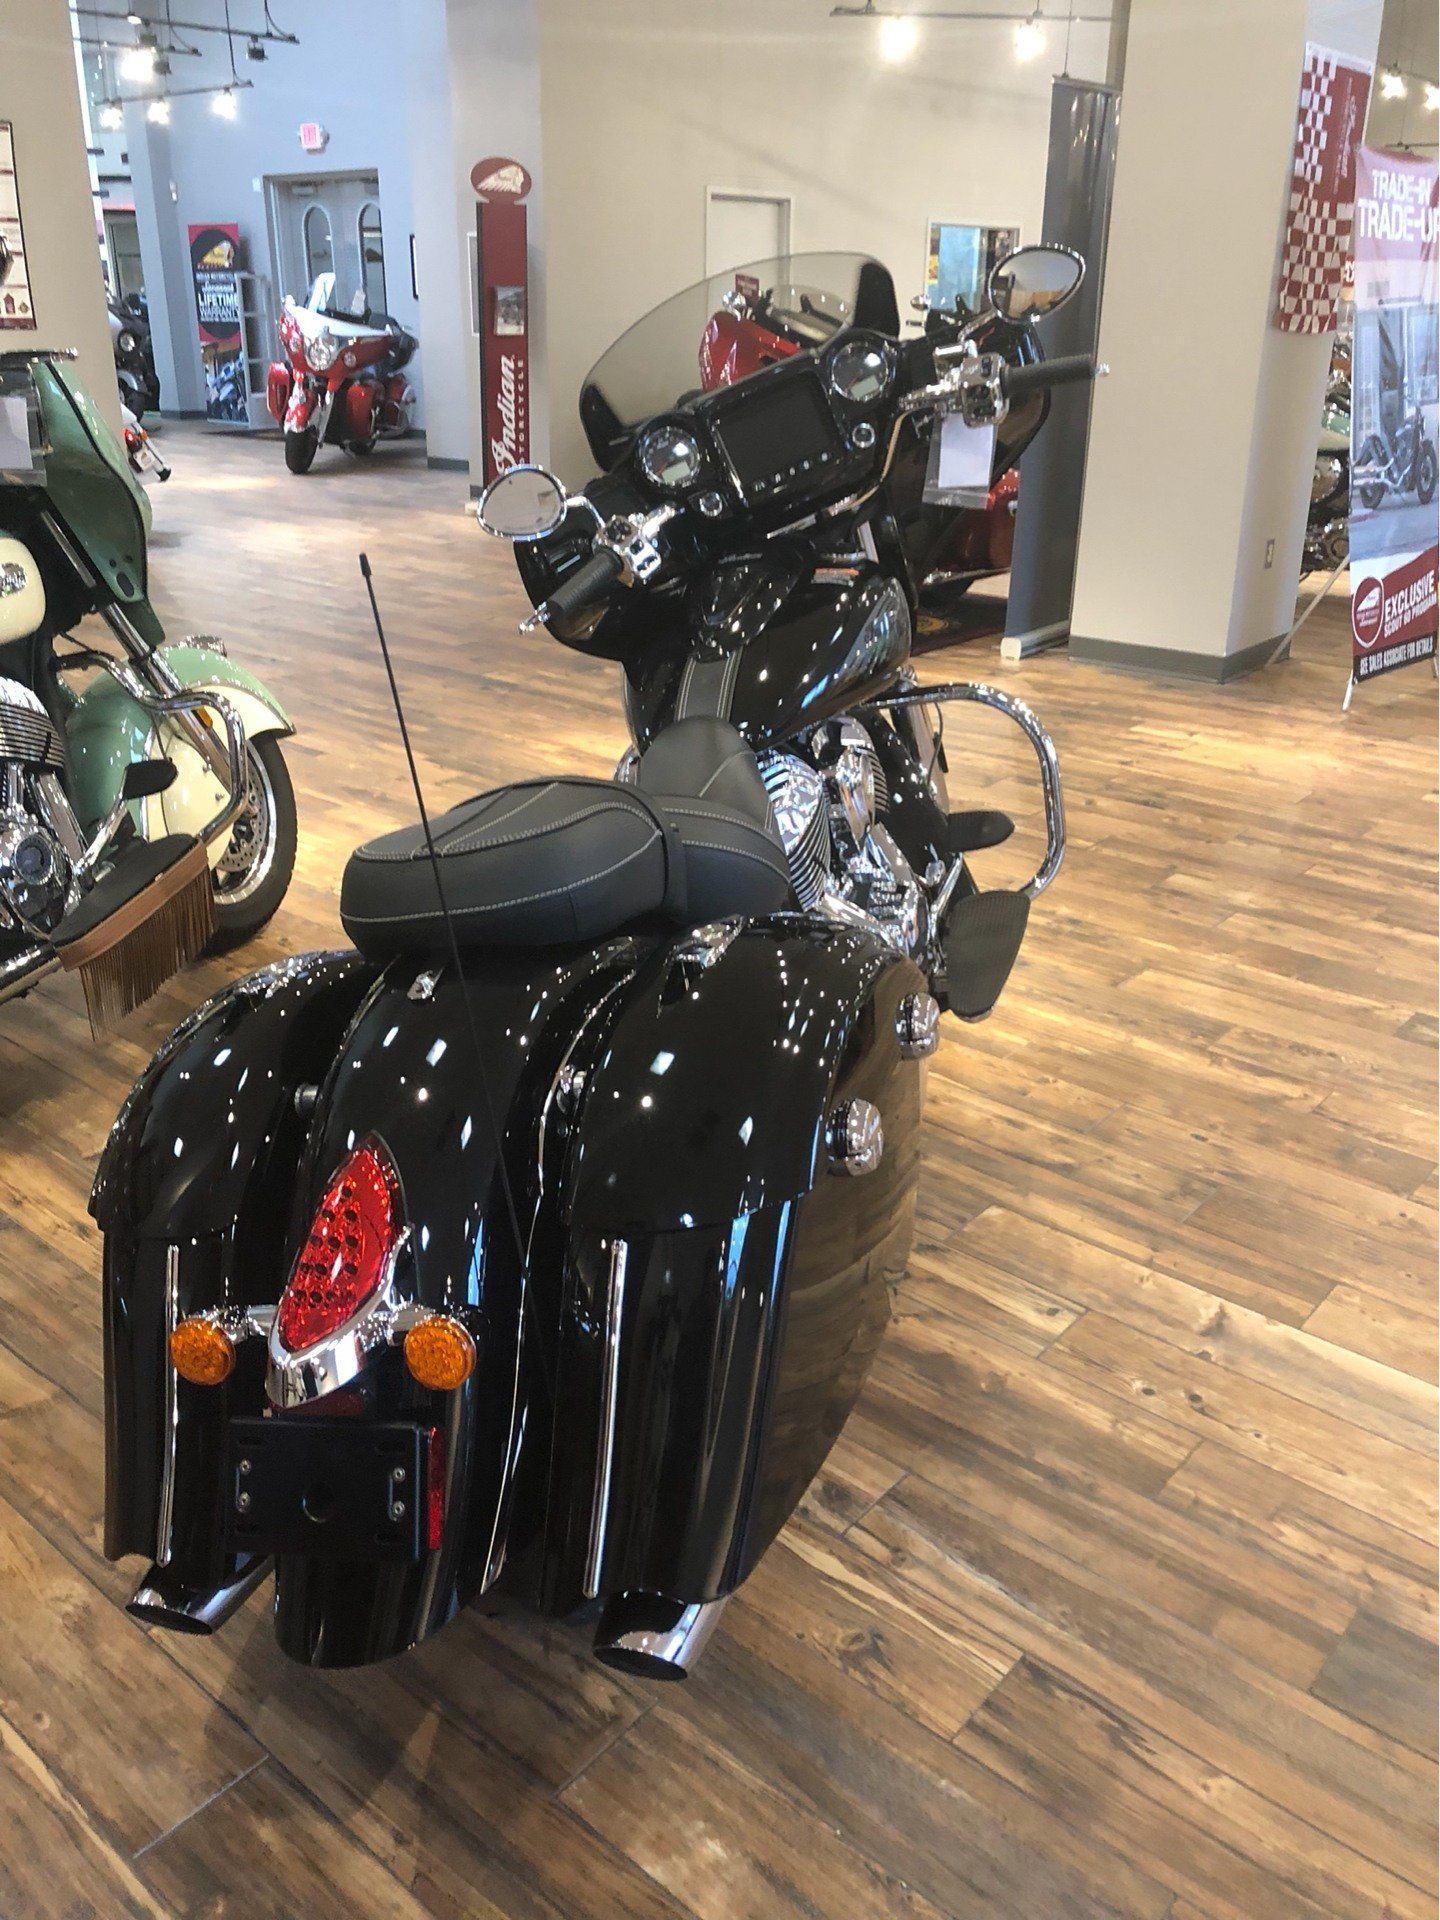 2018 Indian Chieftain Limited ABS 5